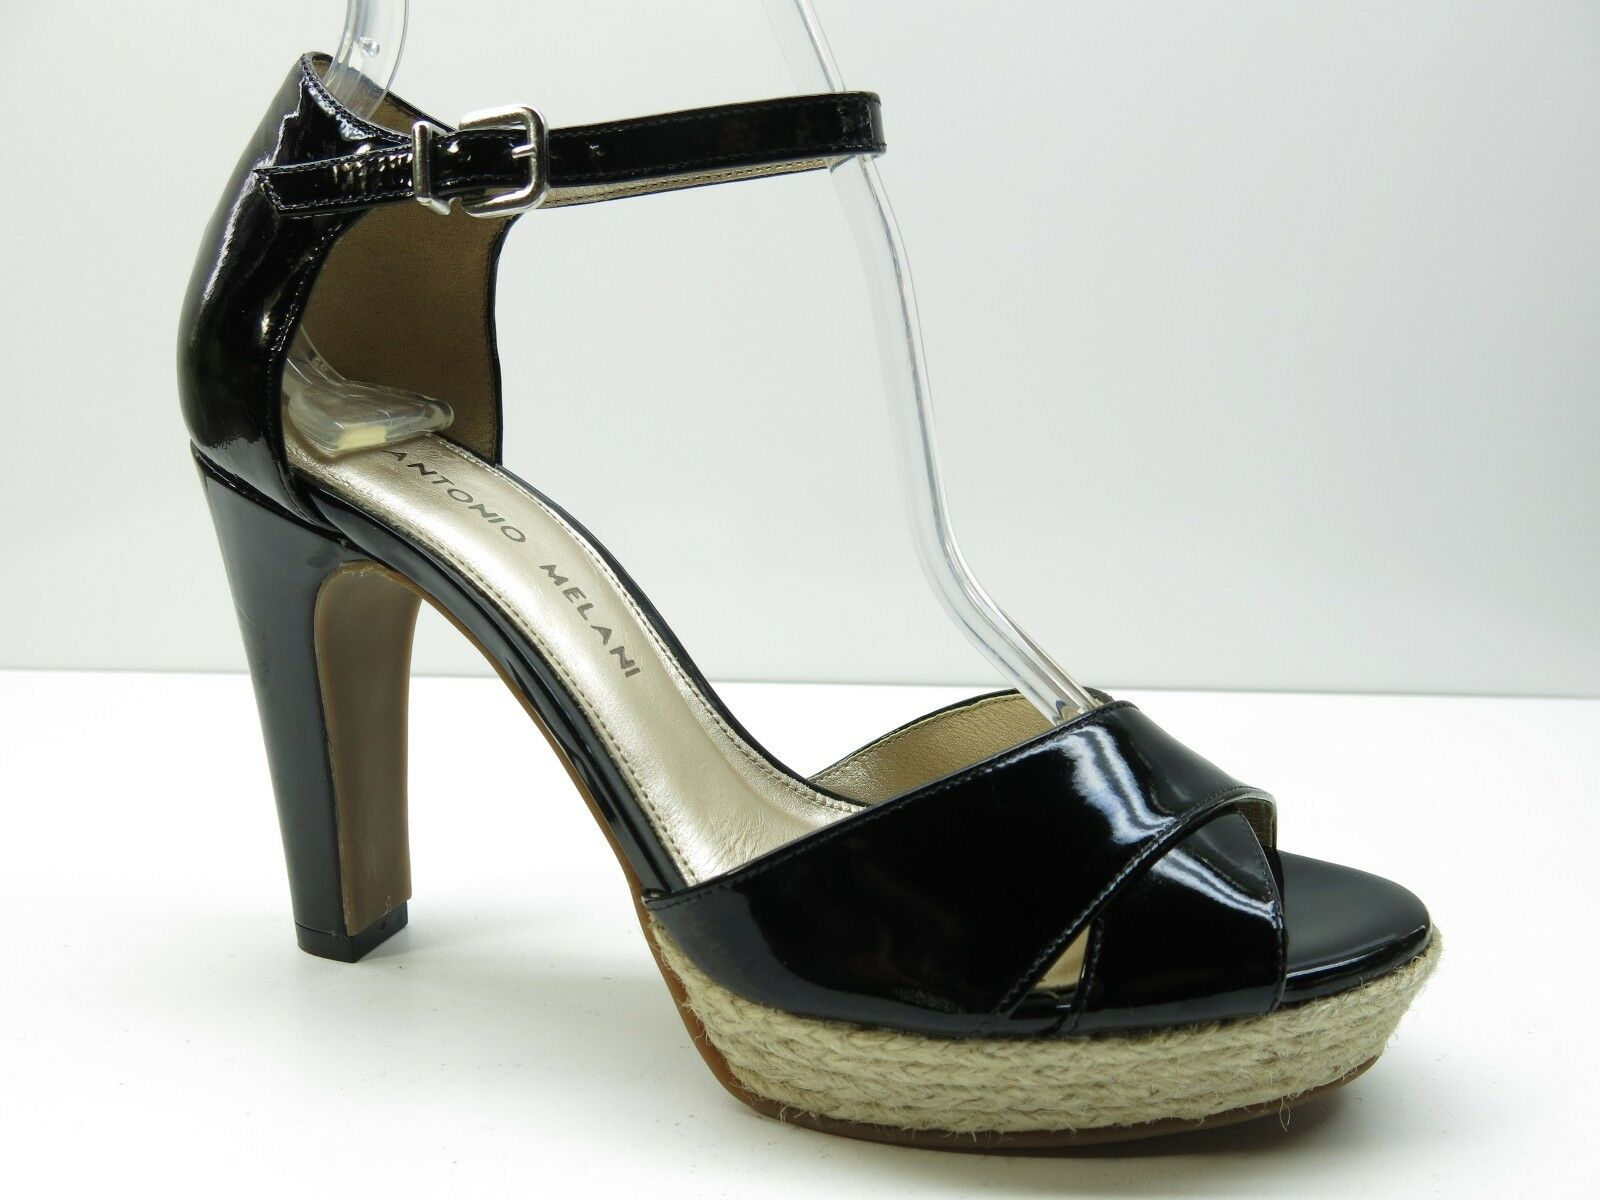 Antonio Pump Melani Black Patent Leather Strap Platform Sandal Pump Antonio 6.5M 6.5 MSRP $89 e08f7a